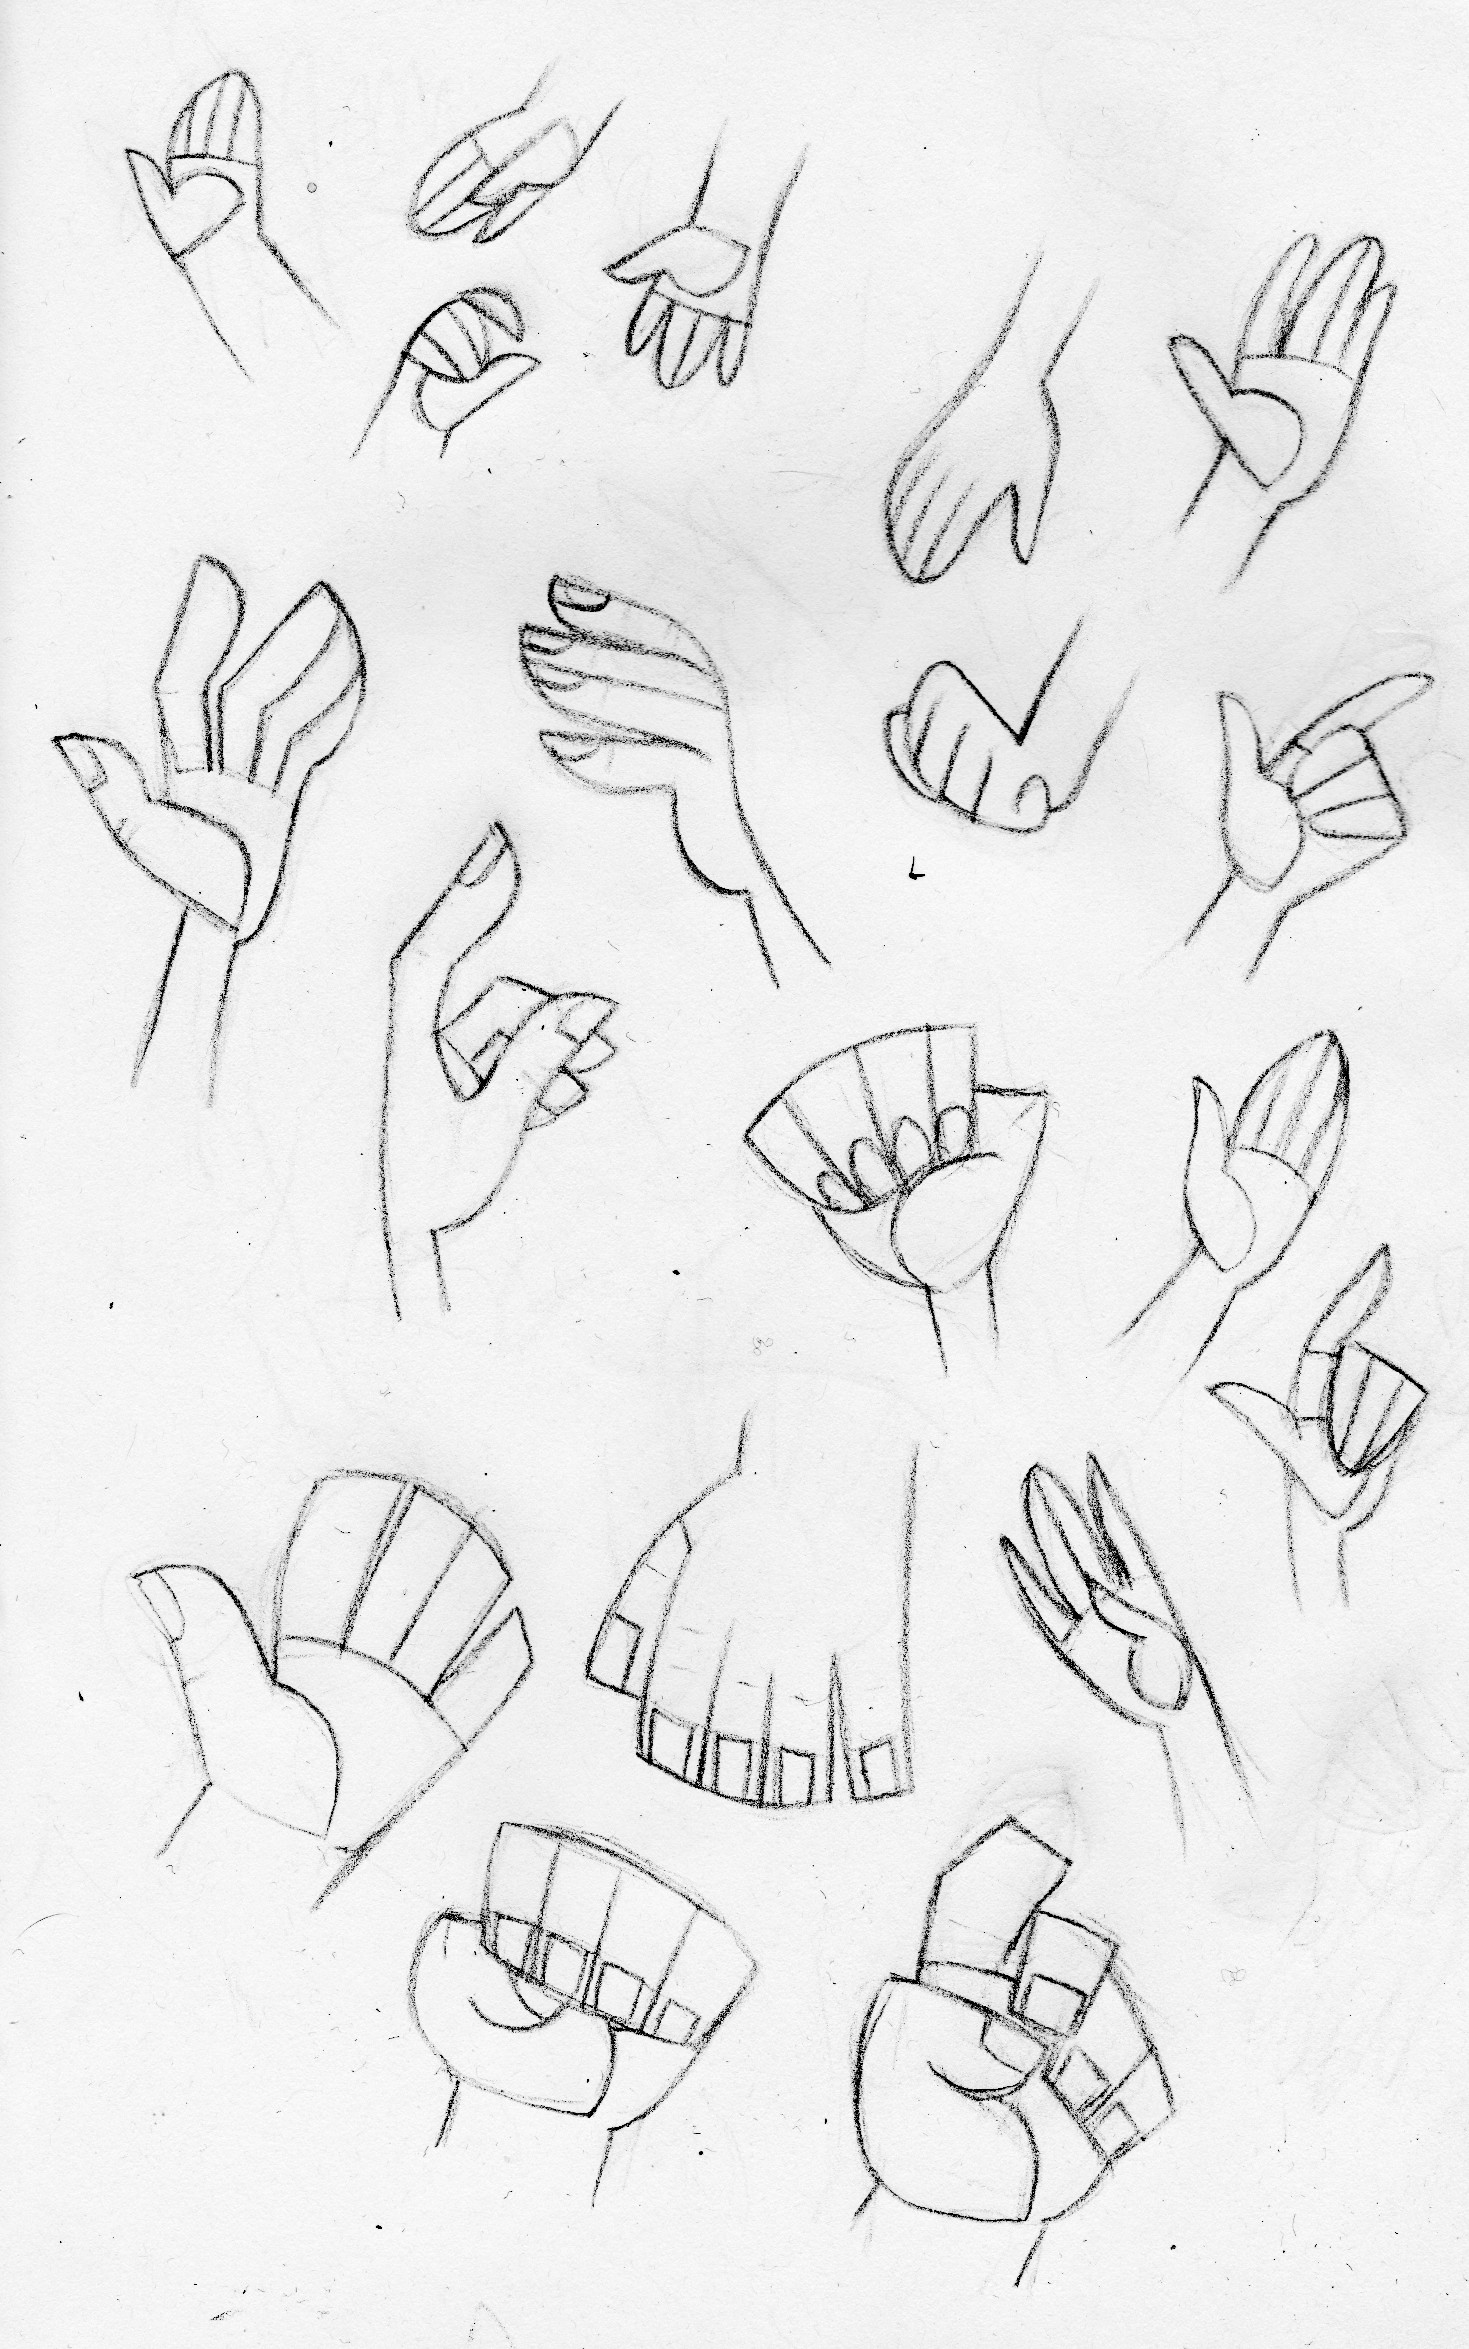 Hands reference sheet for characters (top left to bottom) Little Red, Boy, Elder, Mother, Chief